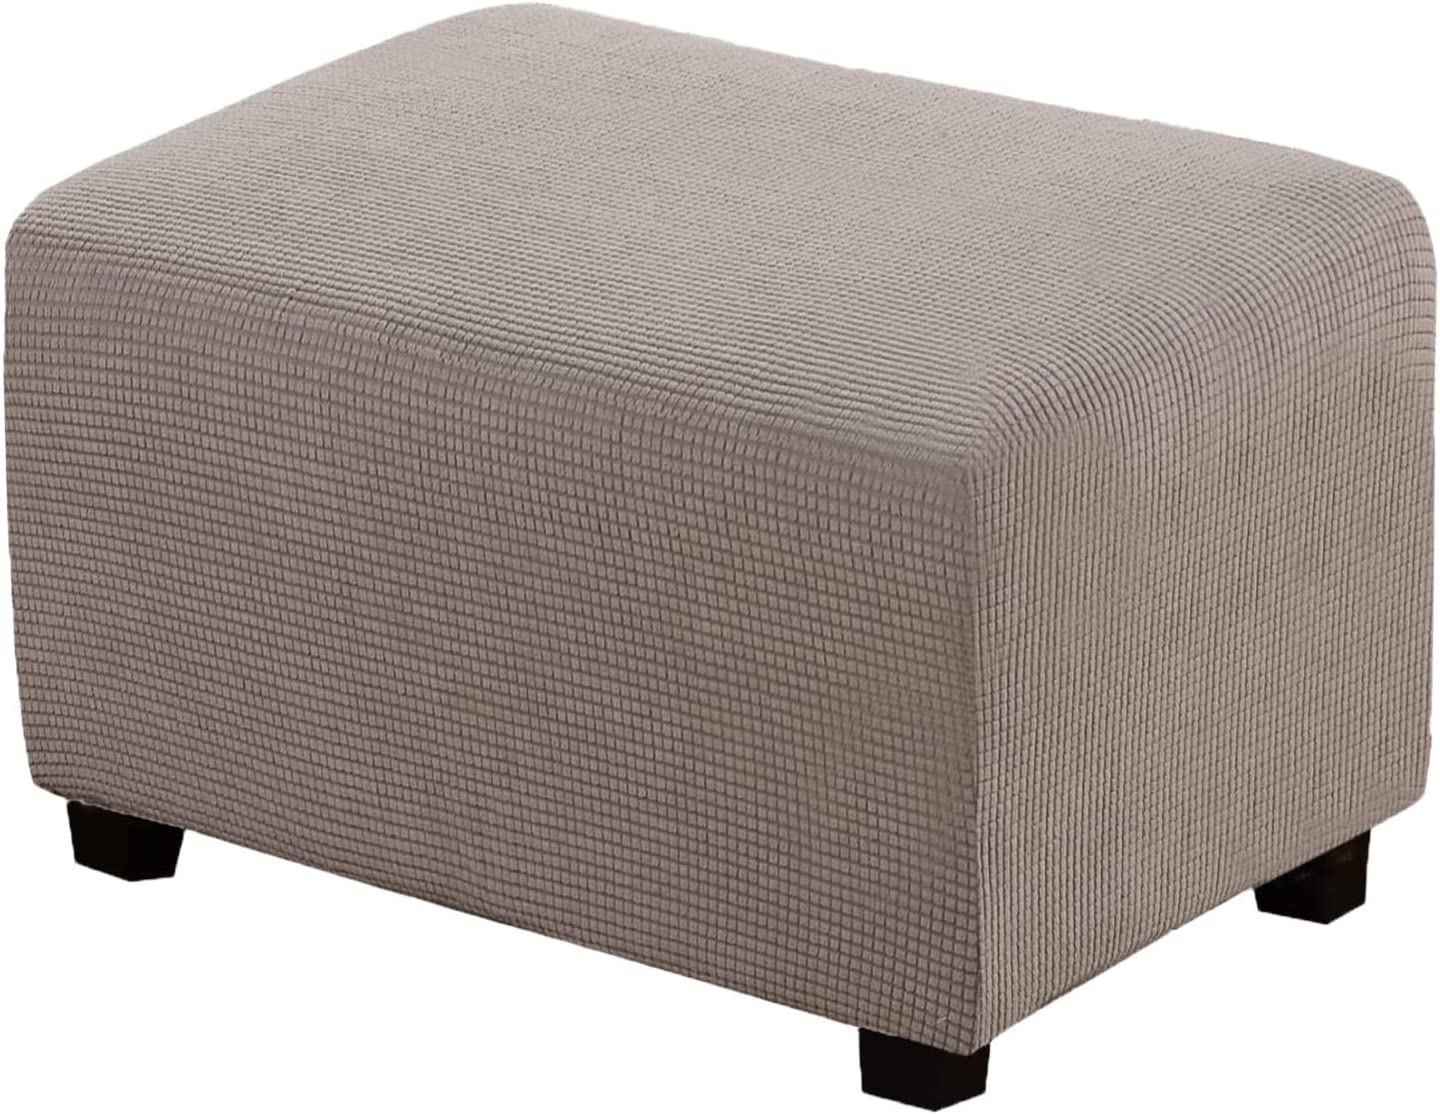 Ottoman Slipcover Folding Storage Stool Furniture Protector for Living Room, High Stretch Soft Rectangle Slipcover with Elastic Bottom Durable Spandex Stretch X-Large, Taupe